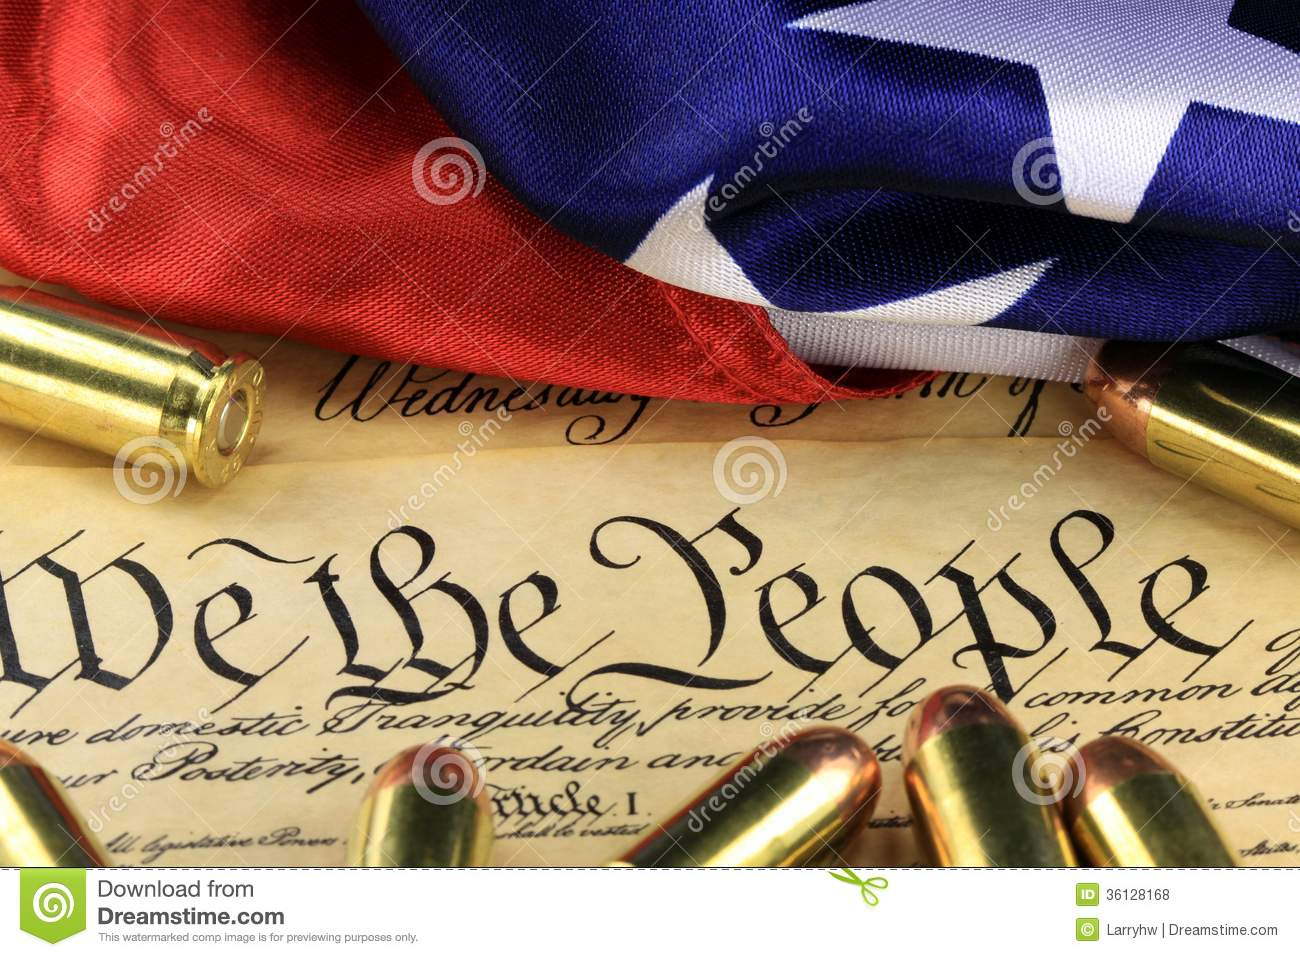 an analysis of the second amendment in the united states of america Second amendment, amendment to the constitution of the united states, adopted in 1791 as part of the bill of rights, that provided a constitutional check on congressional power under article i section 8 to organize, arm, and discipline the federal militia.